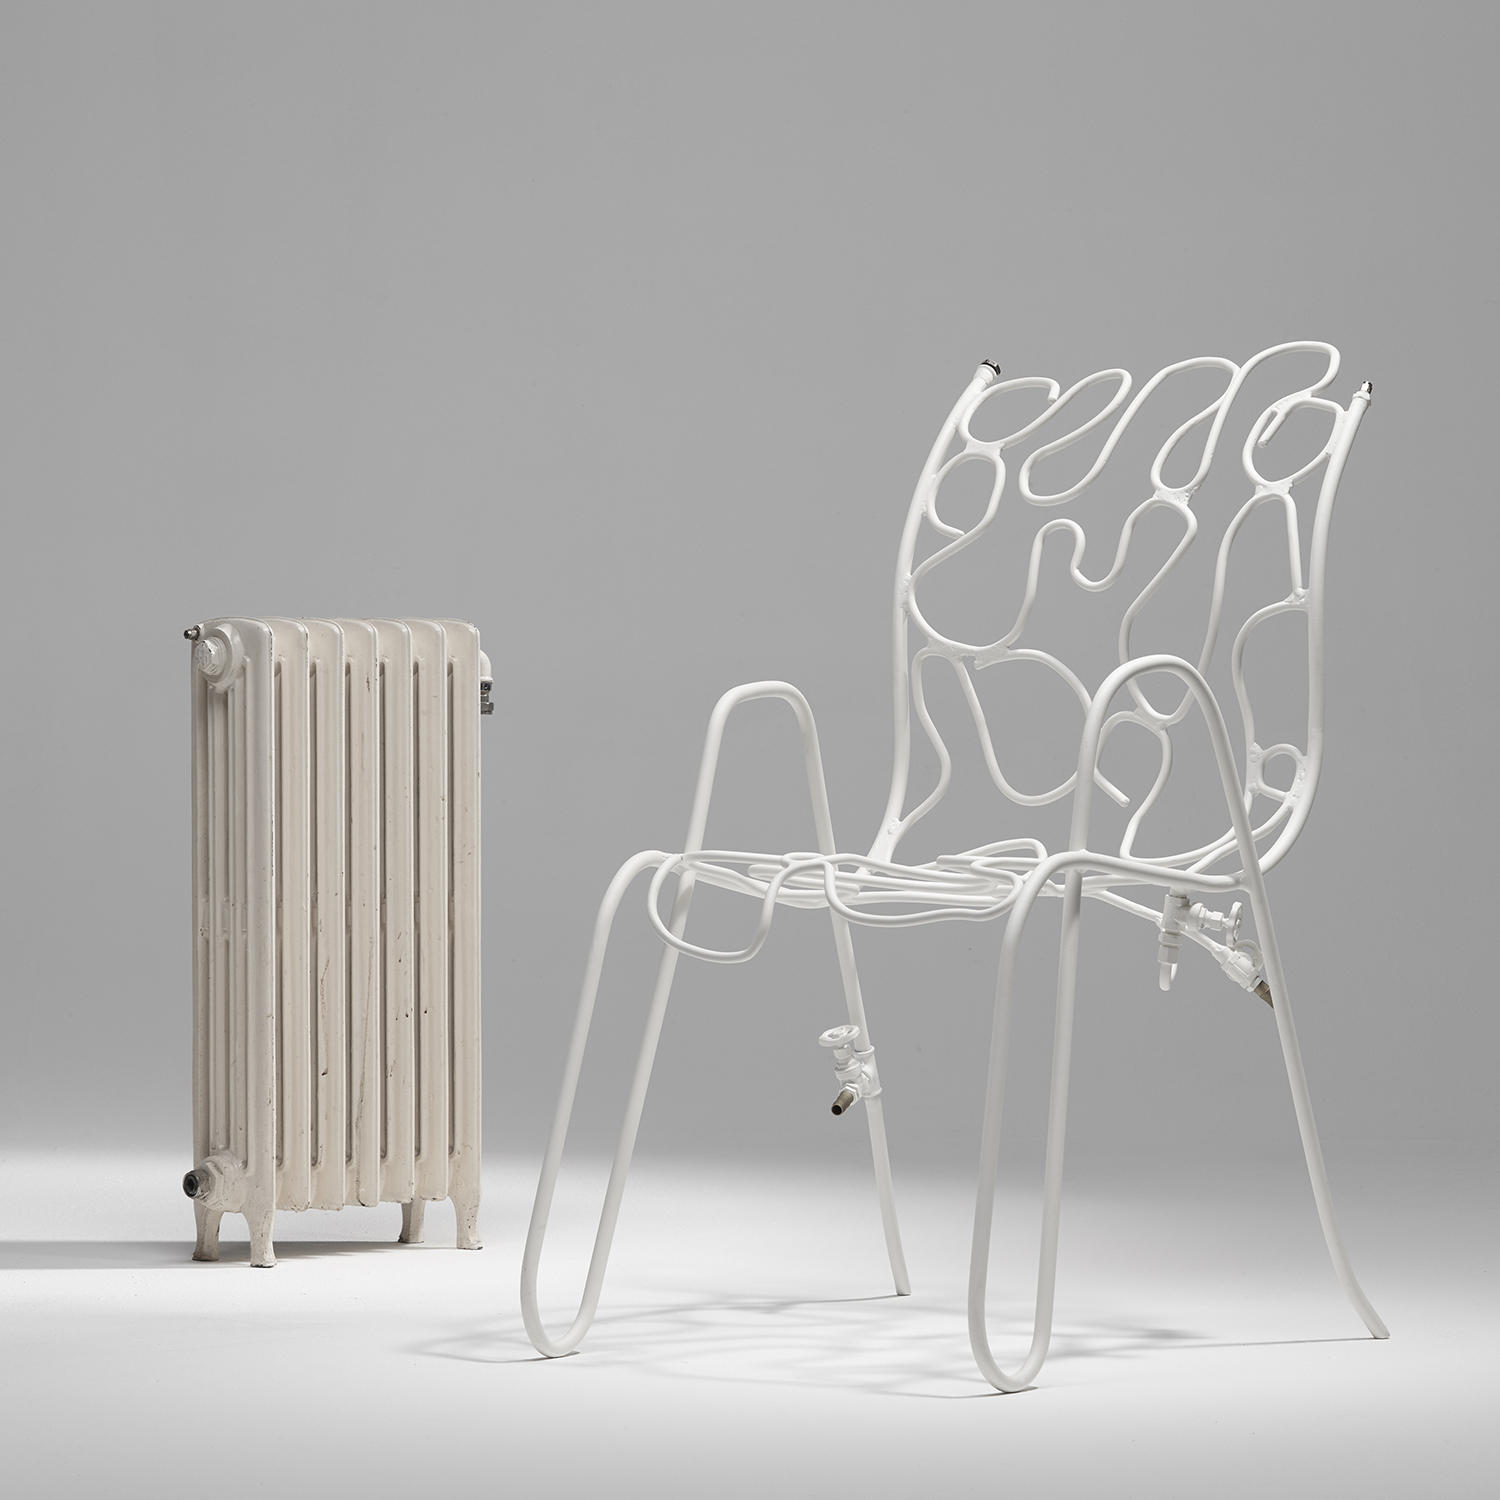 Scottie Heated chair by Fabrique Publique